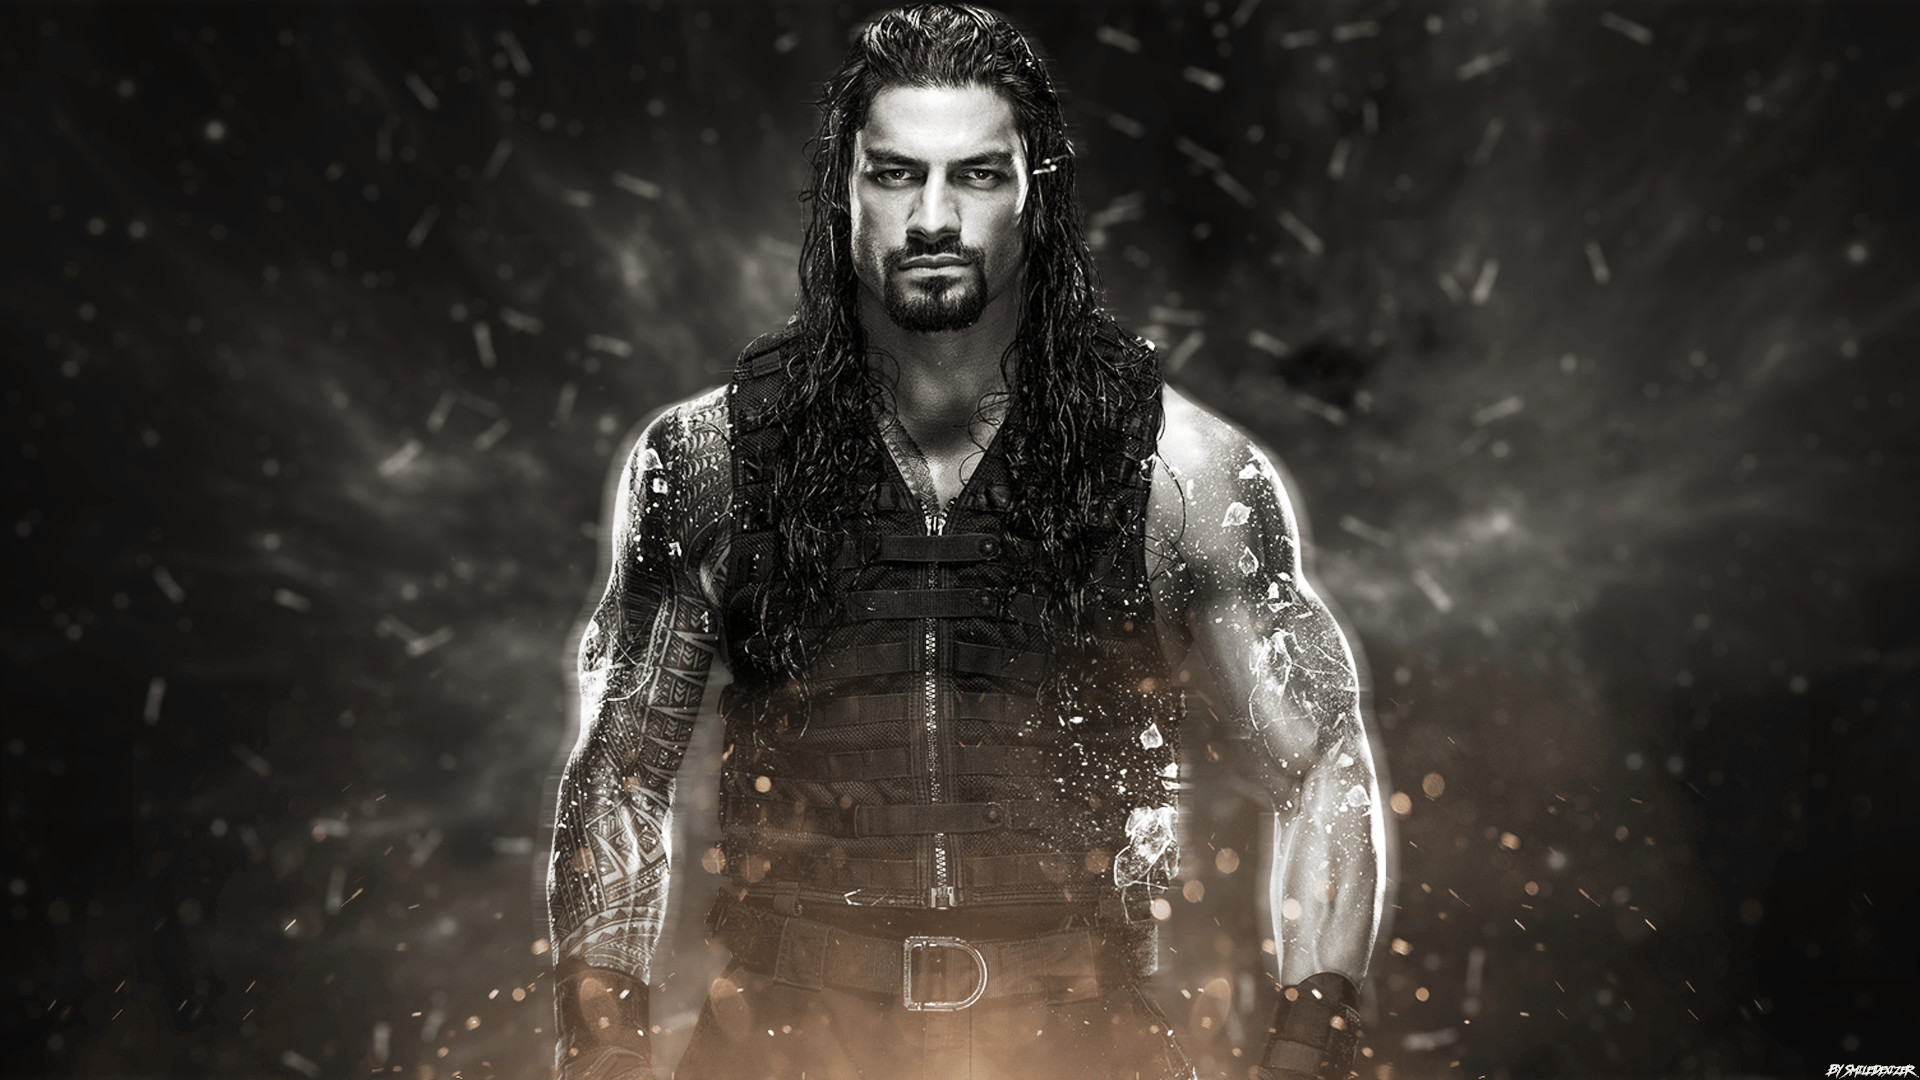 1920x1080 WWE Roman Reigns Wallpaper by Phenomenon-Des on DeviantArt